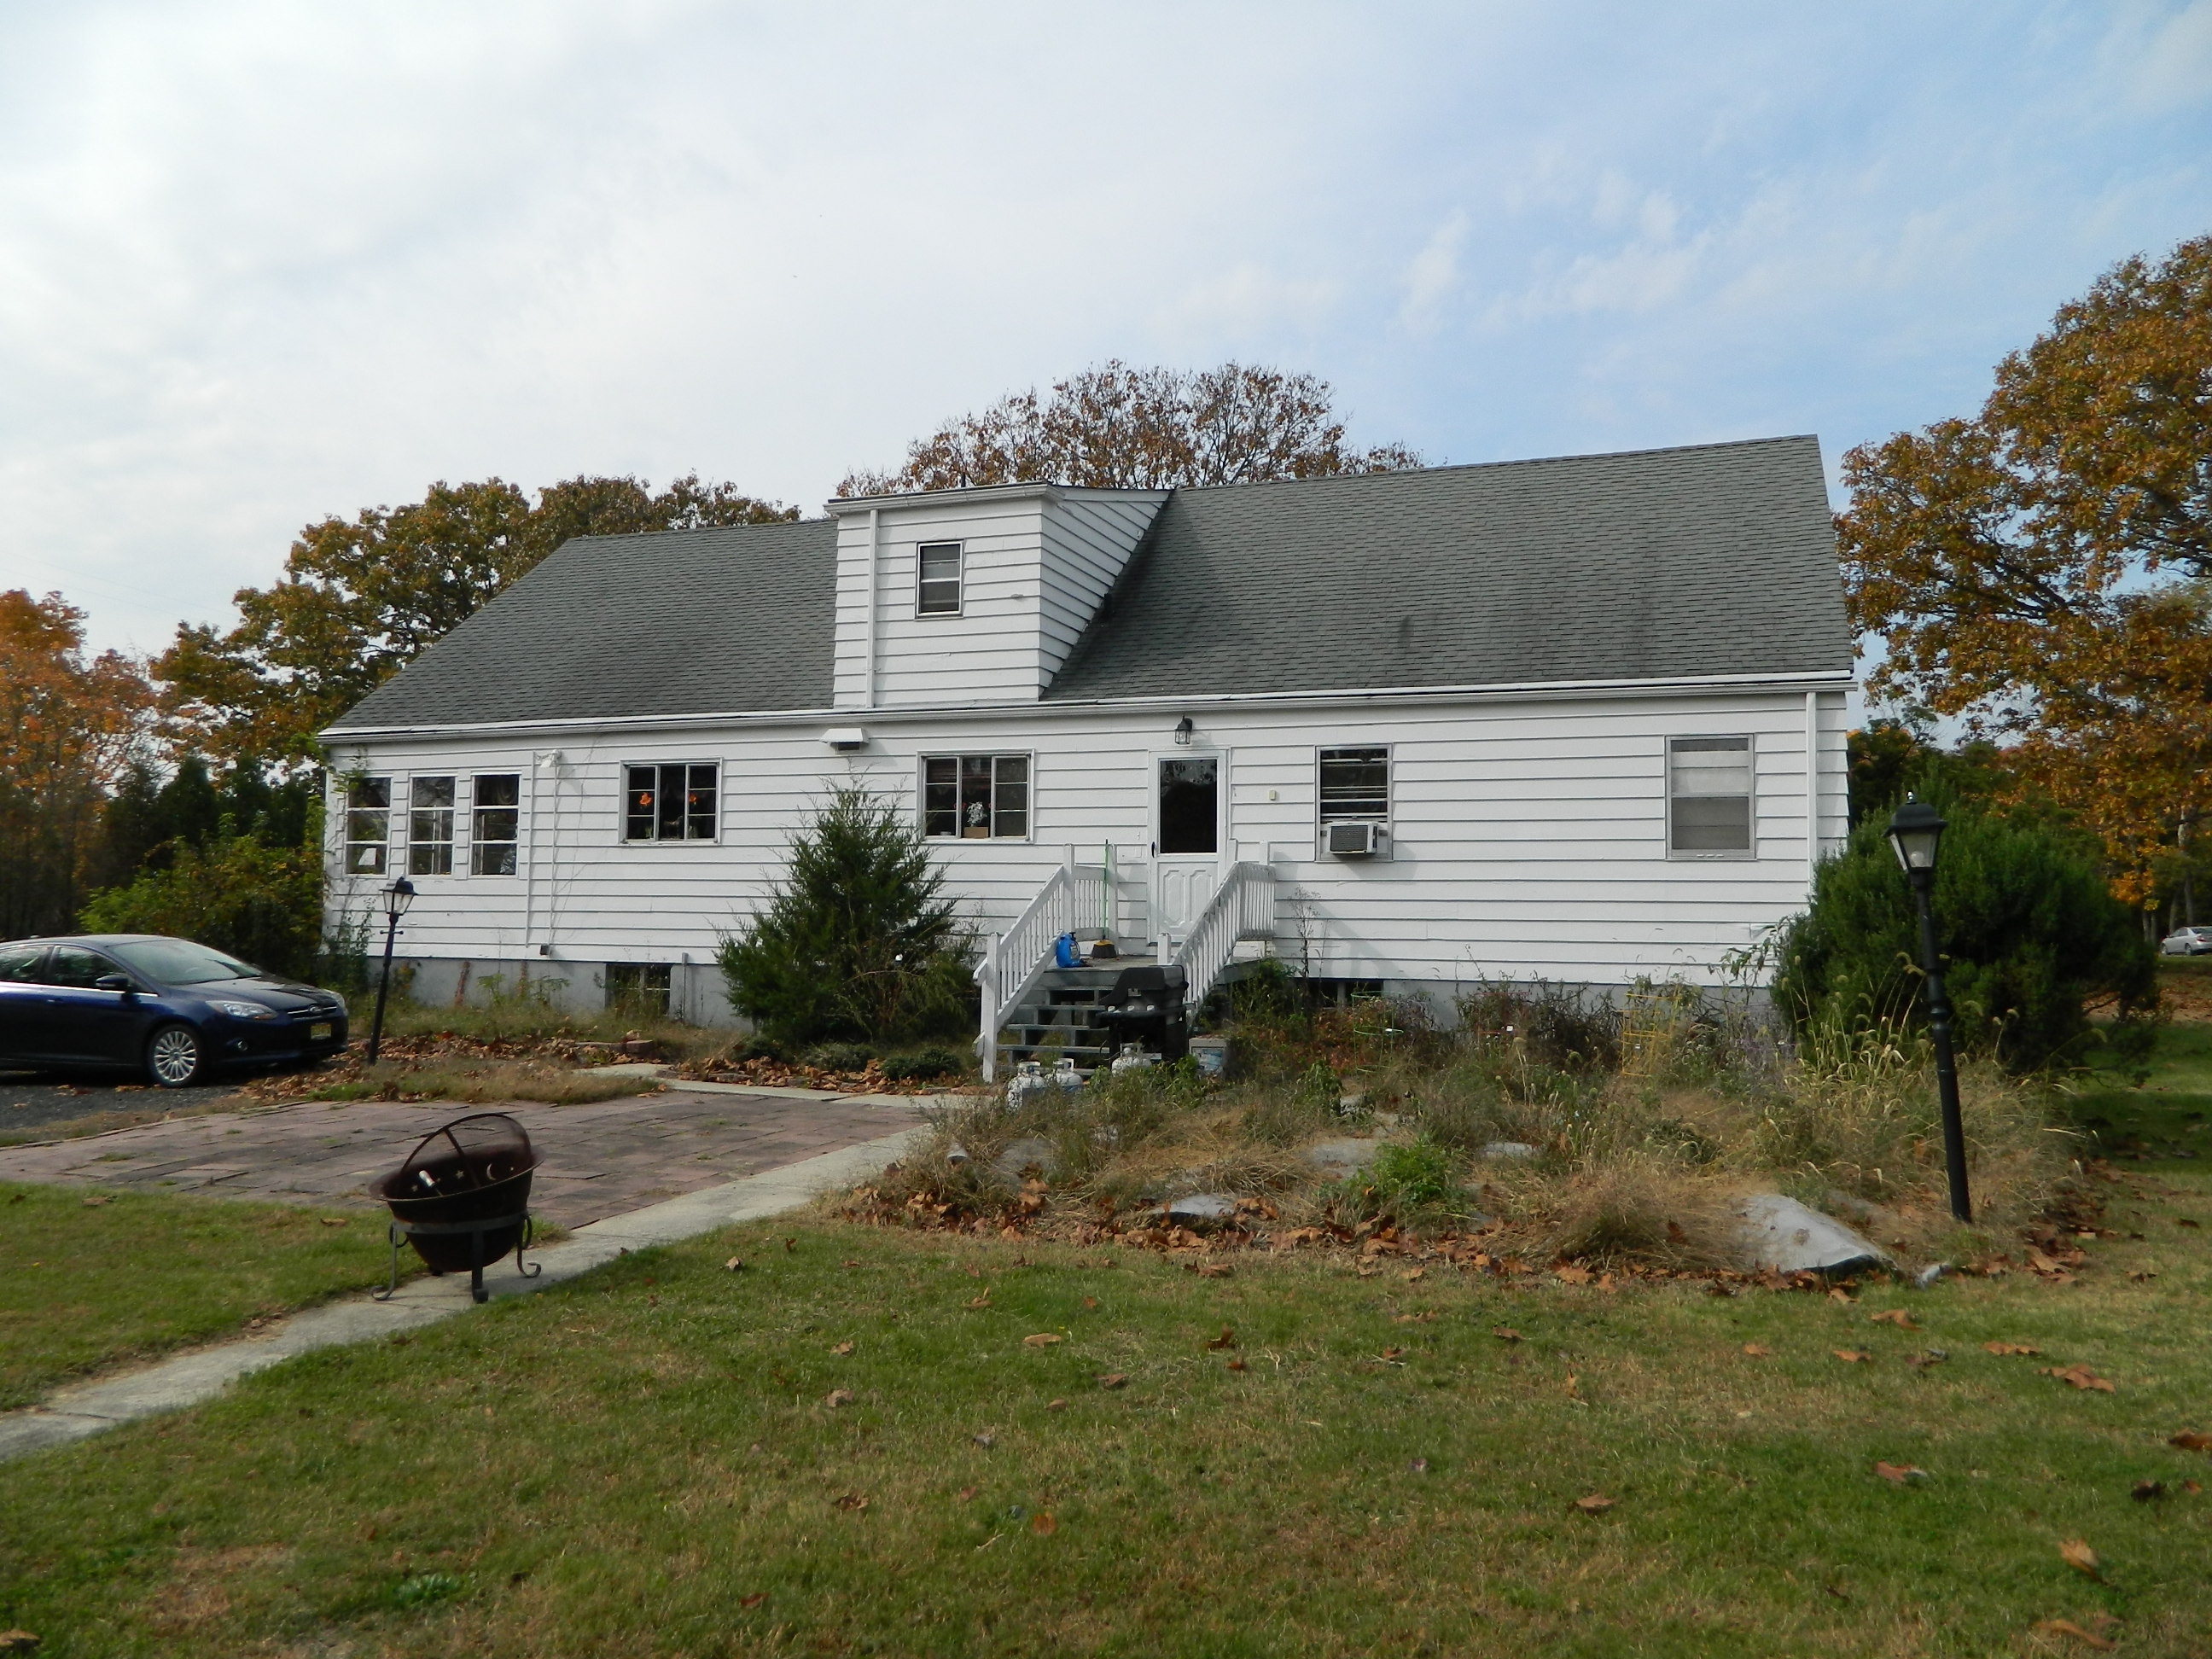 Existing rear of home